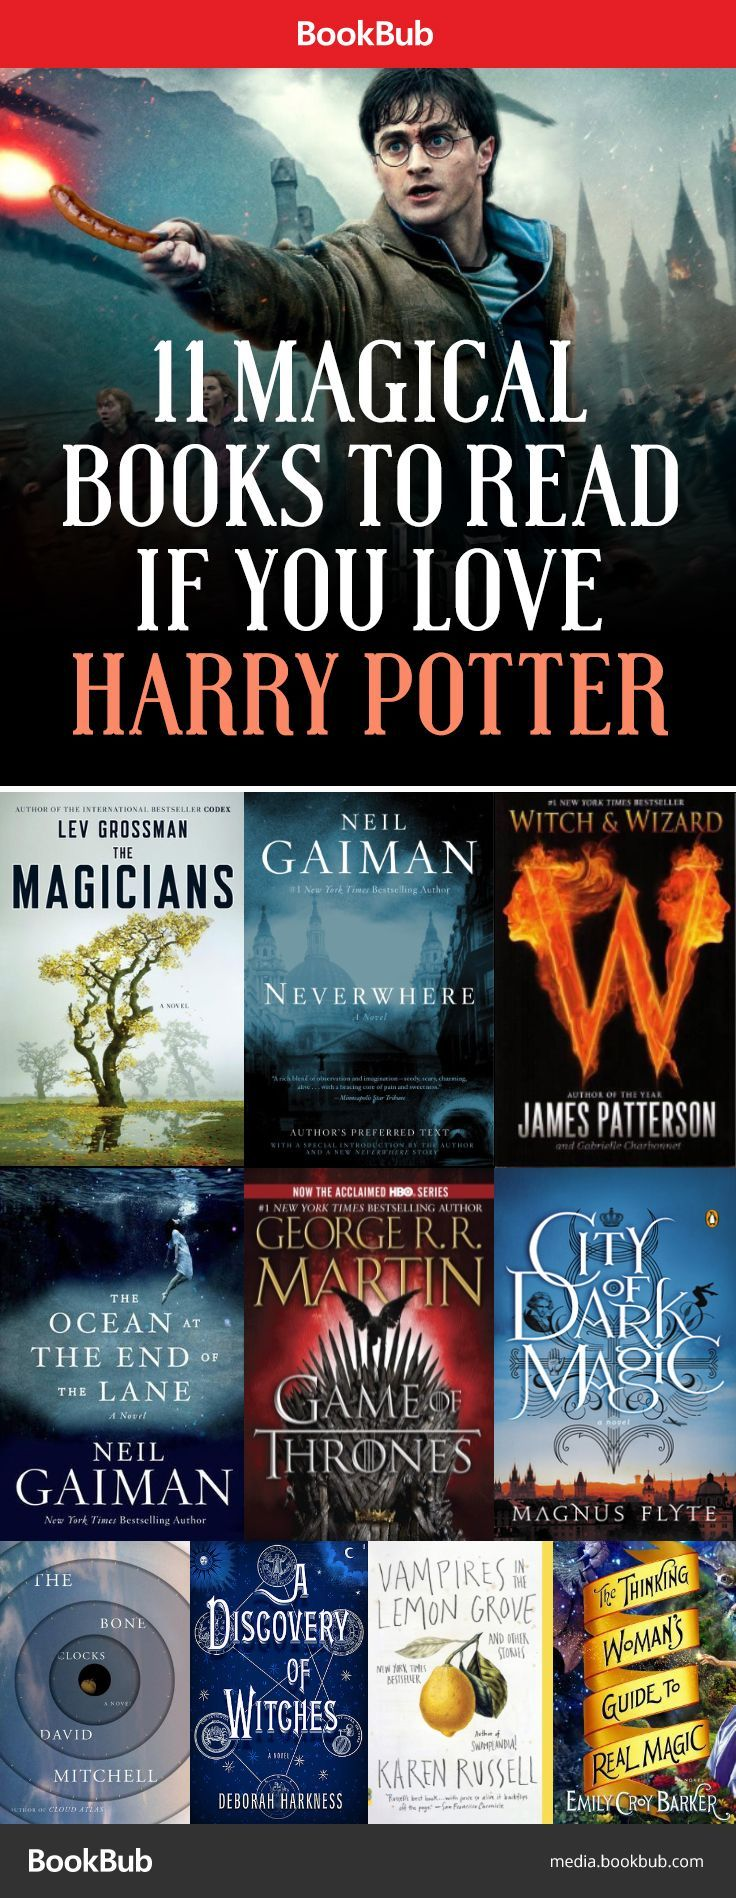 Books to Read If You Love Harry Potter. I may try 2 or 3 of these